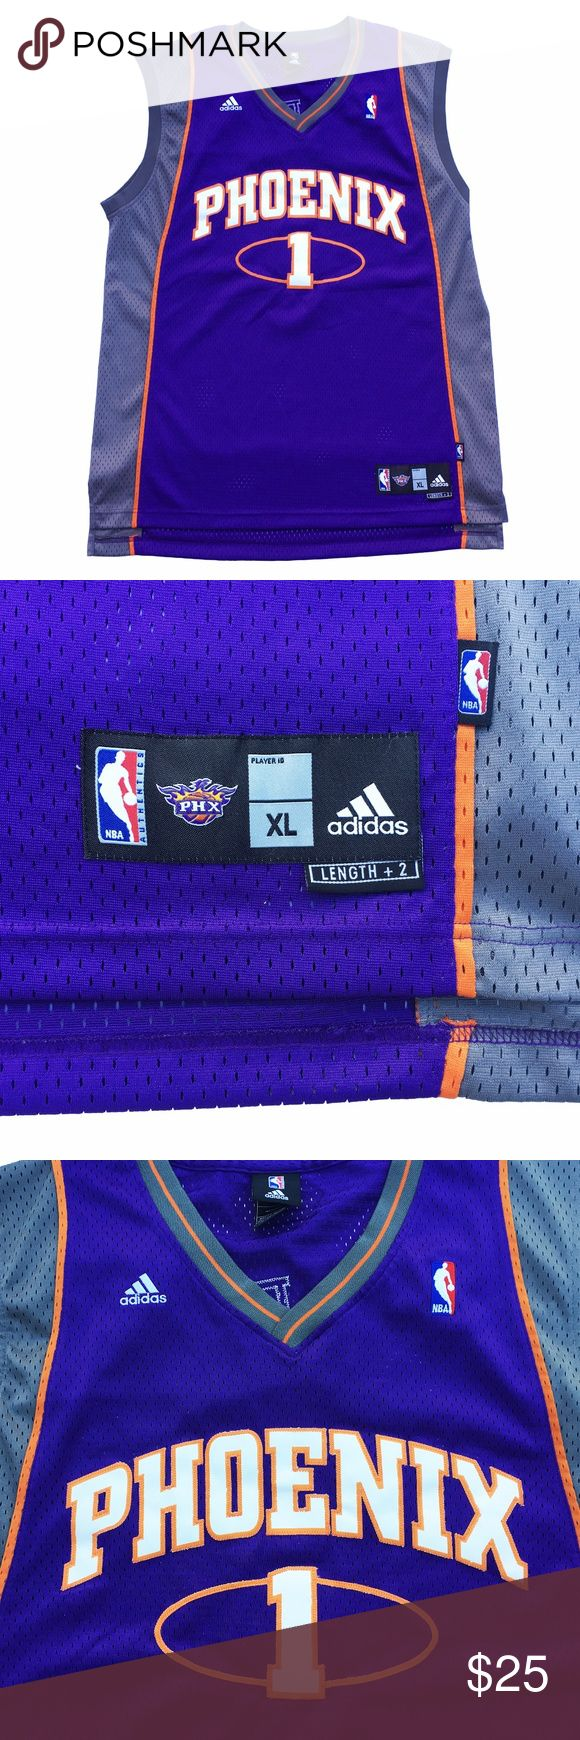 Amare Stoudemire Phoenix Suns Adidas Jersey XL +2 Adidas Phoenix Suns Amare Stoudemire jersey. Size XL +2. Great condition. Very wearable. 9/10 condition. adidas Shirts